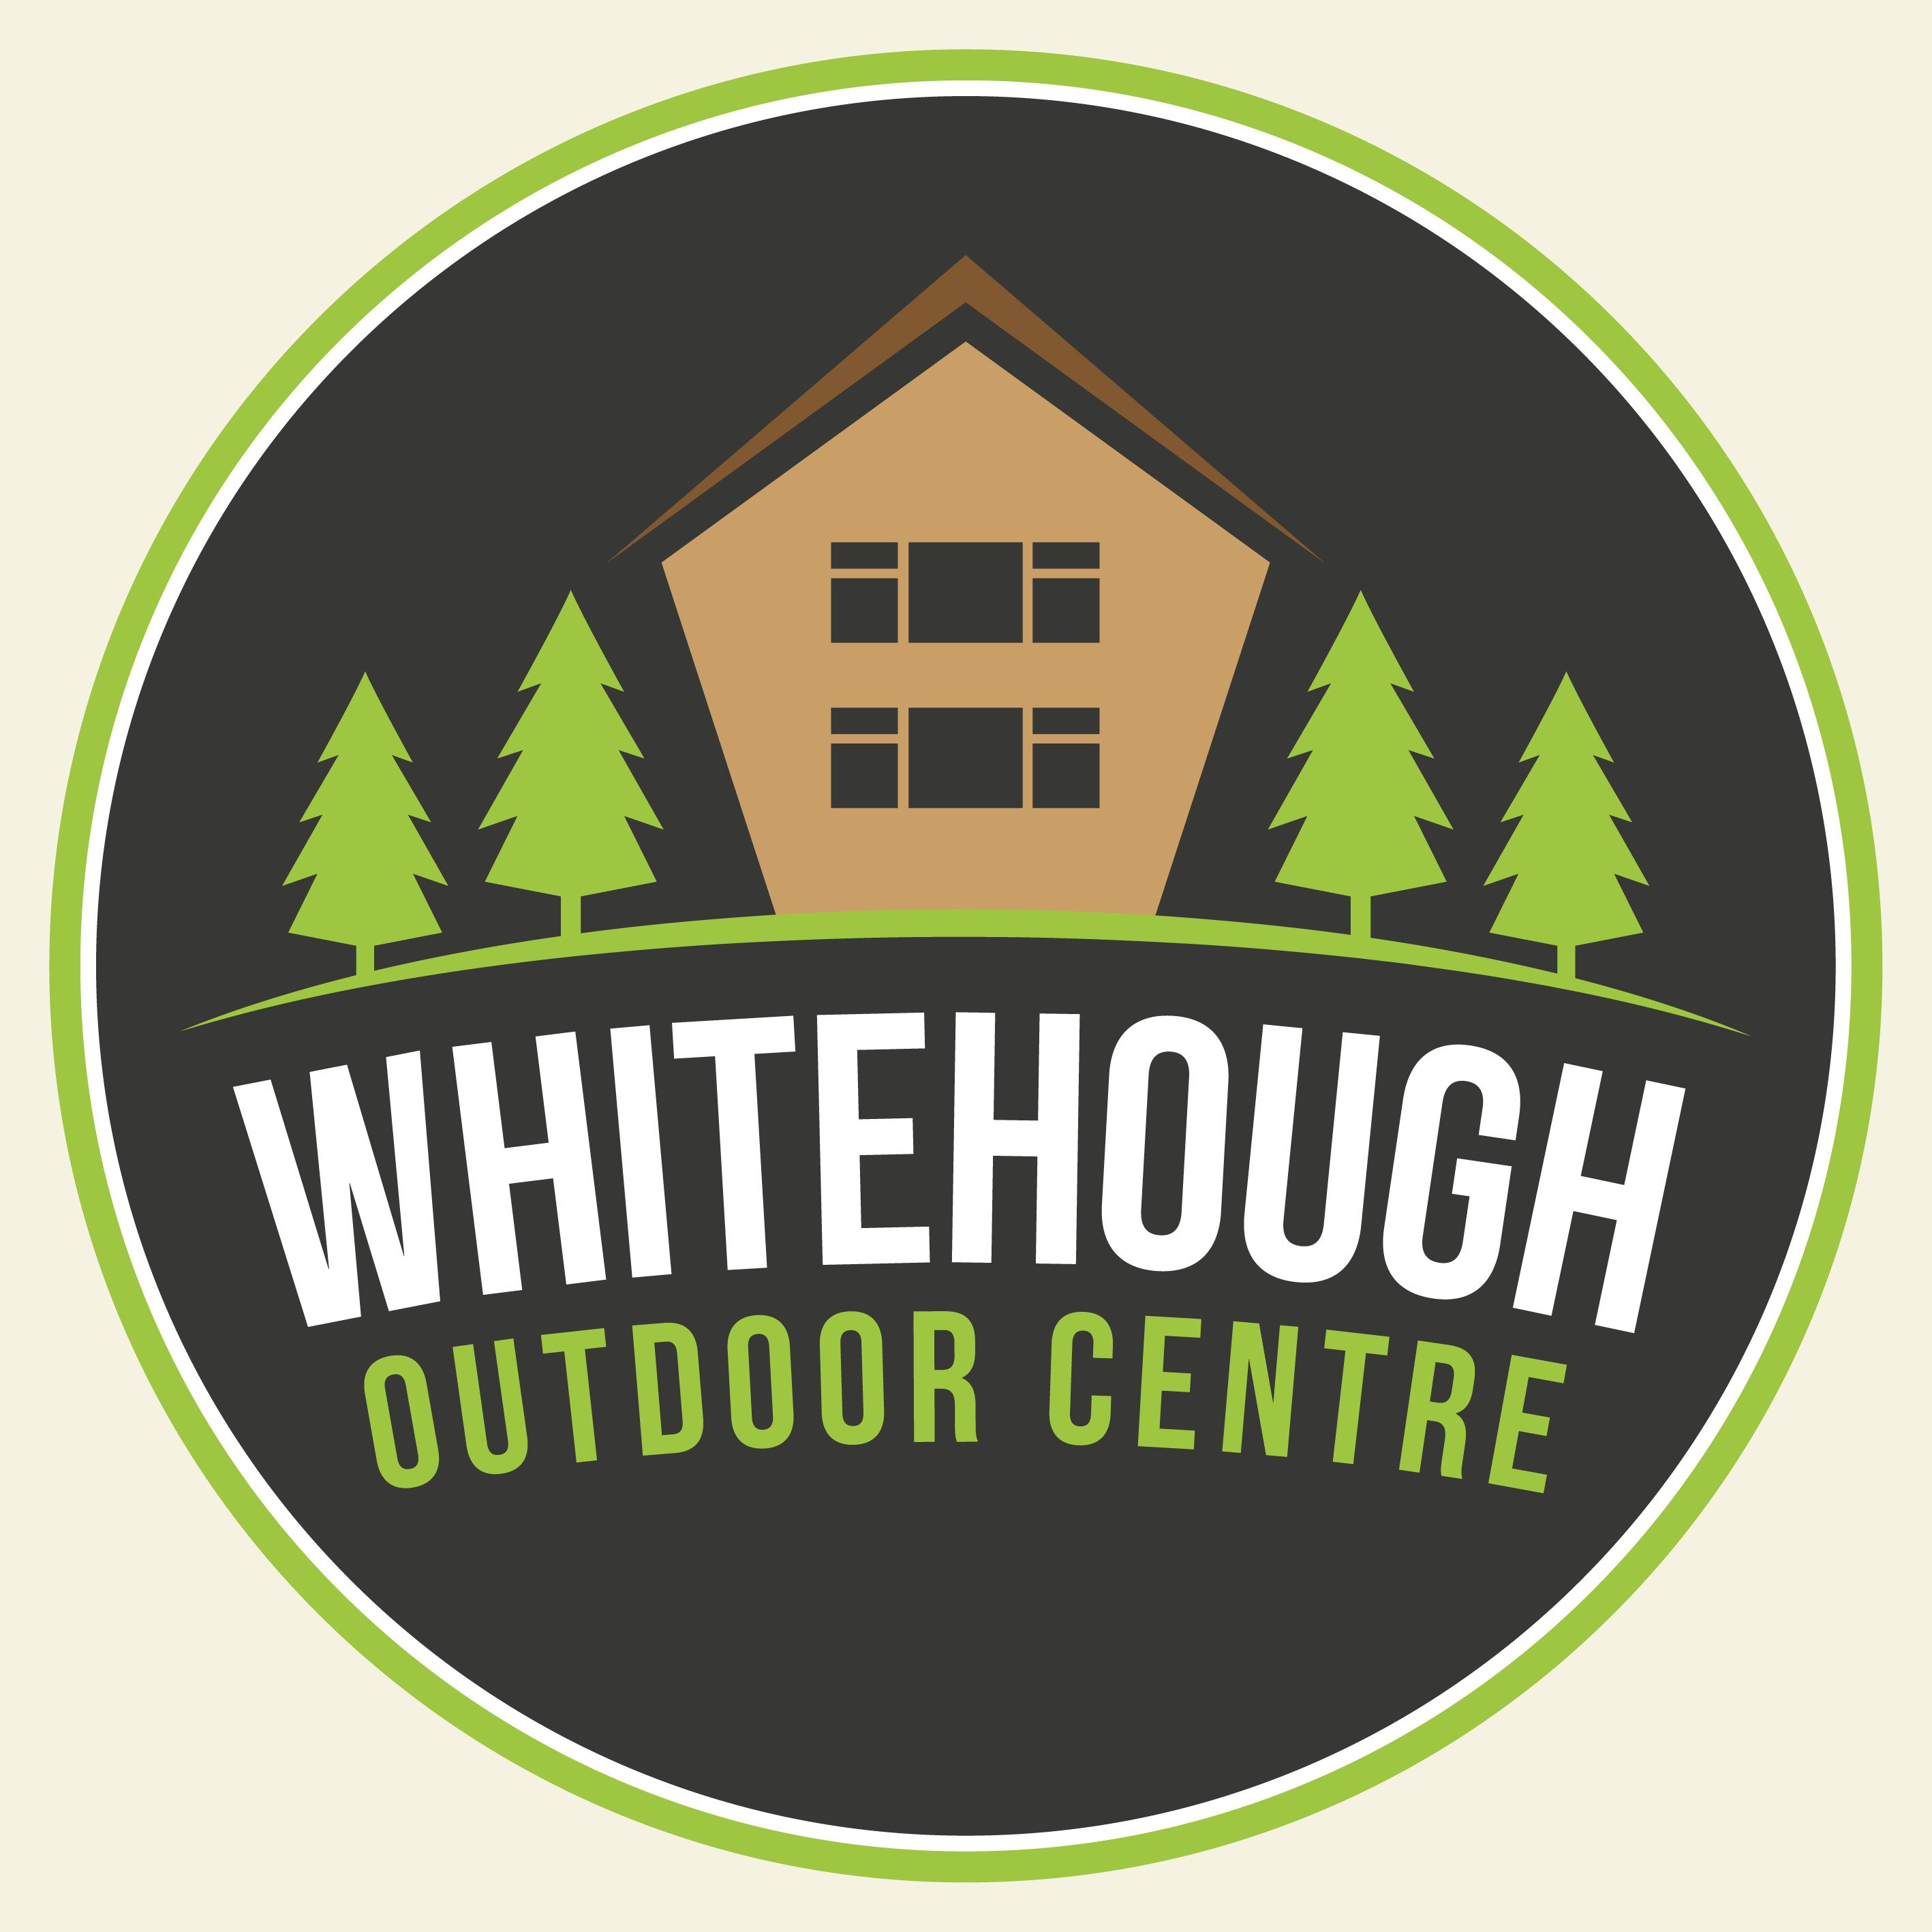 Whitehough Outdoor Centre